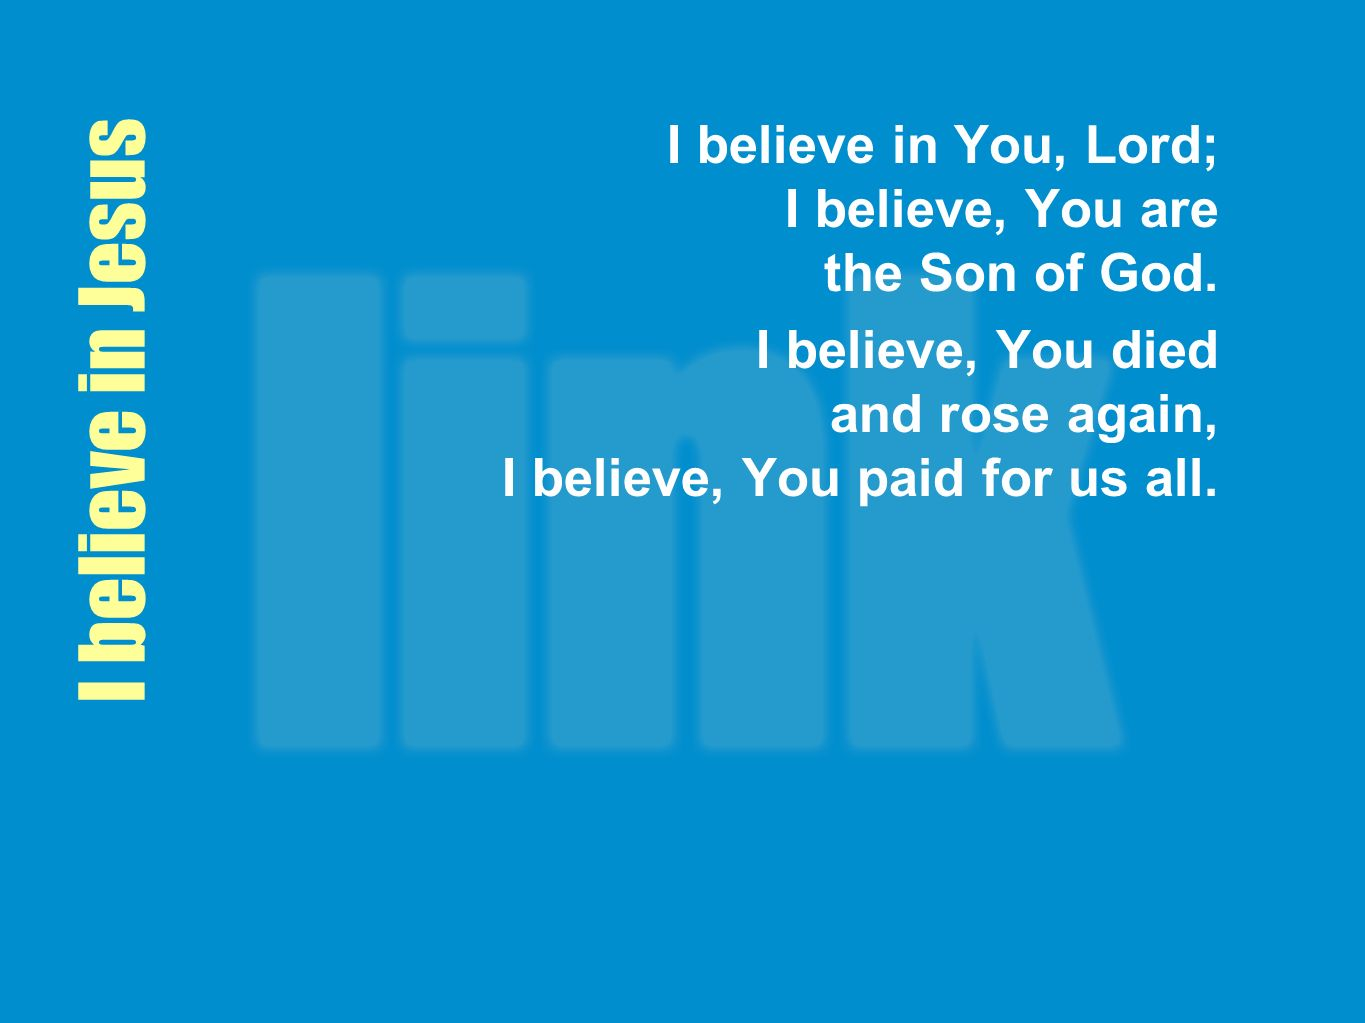 I believe in You, Lord; I believe, You are the Son of God.